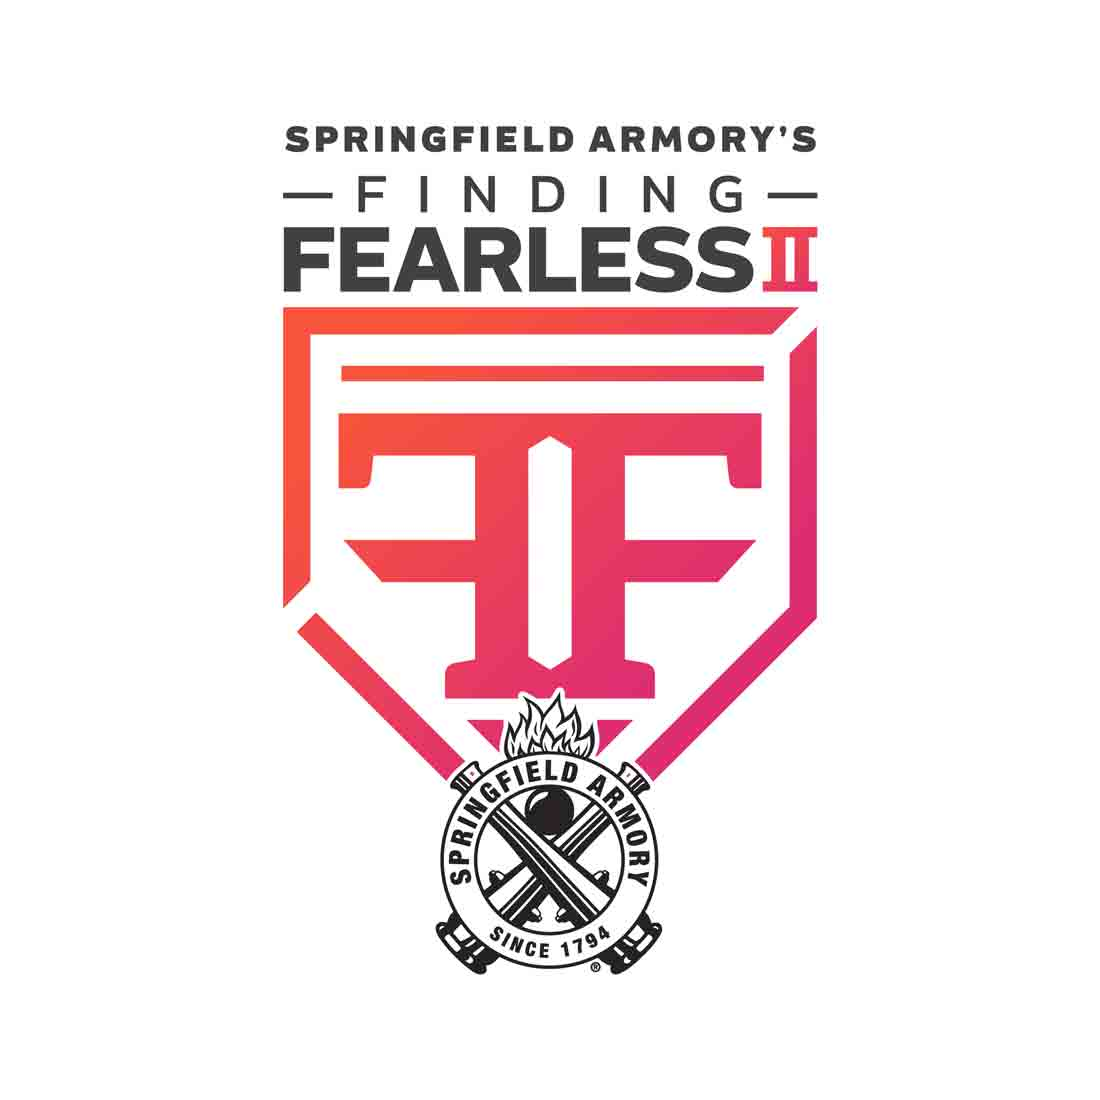 Springfield Armory's Finding Fearless 2 logo